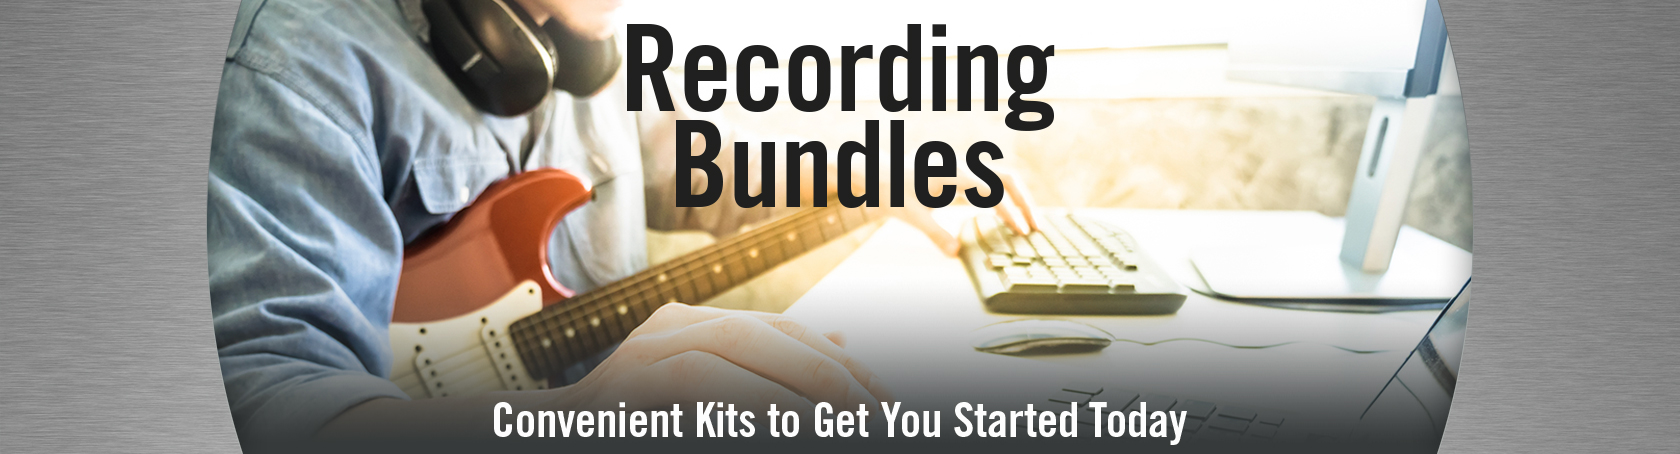 Recording Bundles - Convenient Kits to Get You Started Today